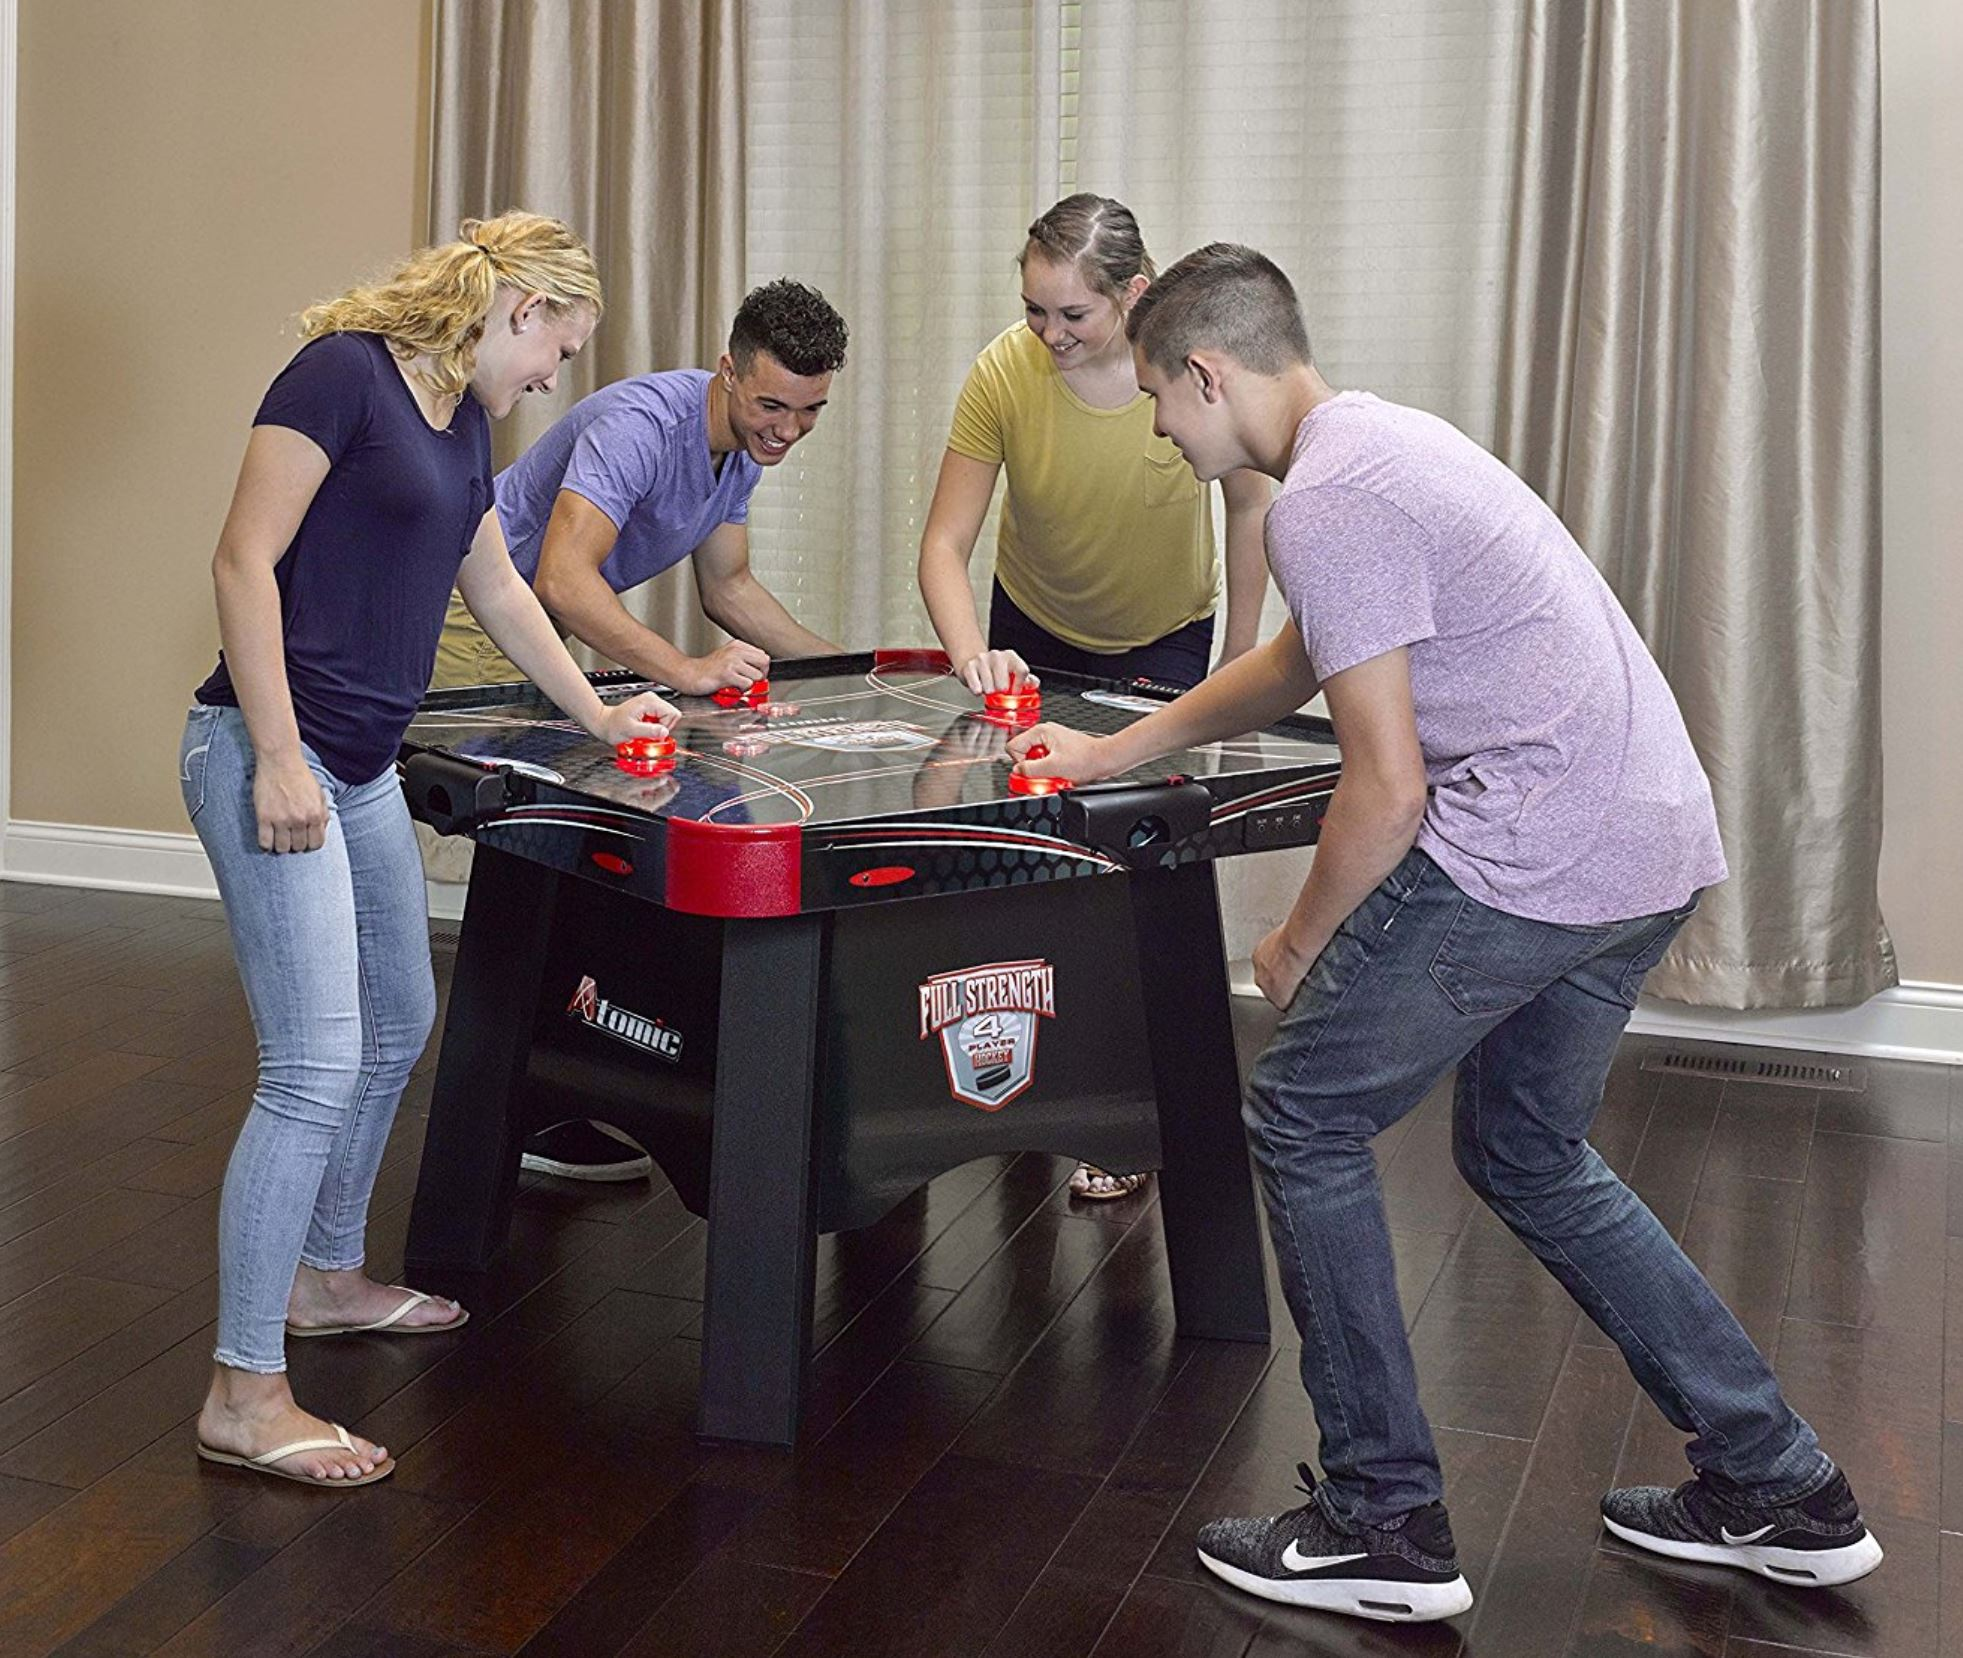 4 Player Air Hockey - Boca Raton - Party Rental Services 786-423-8759